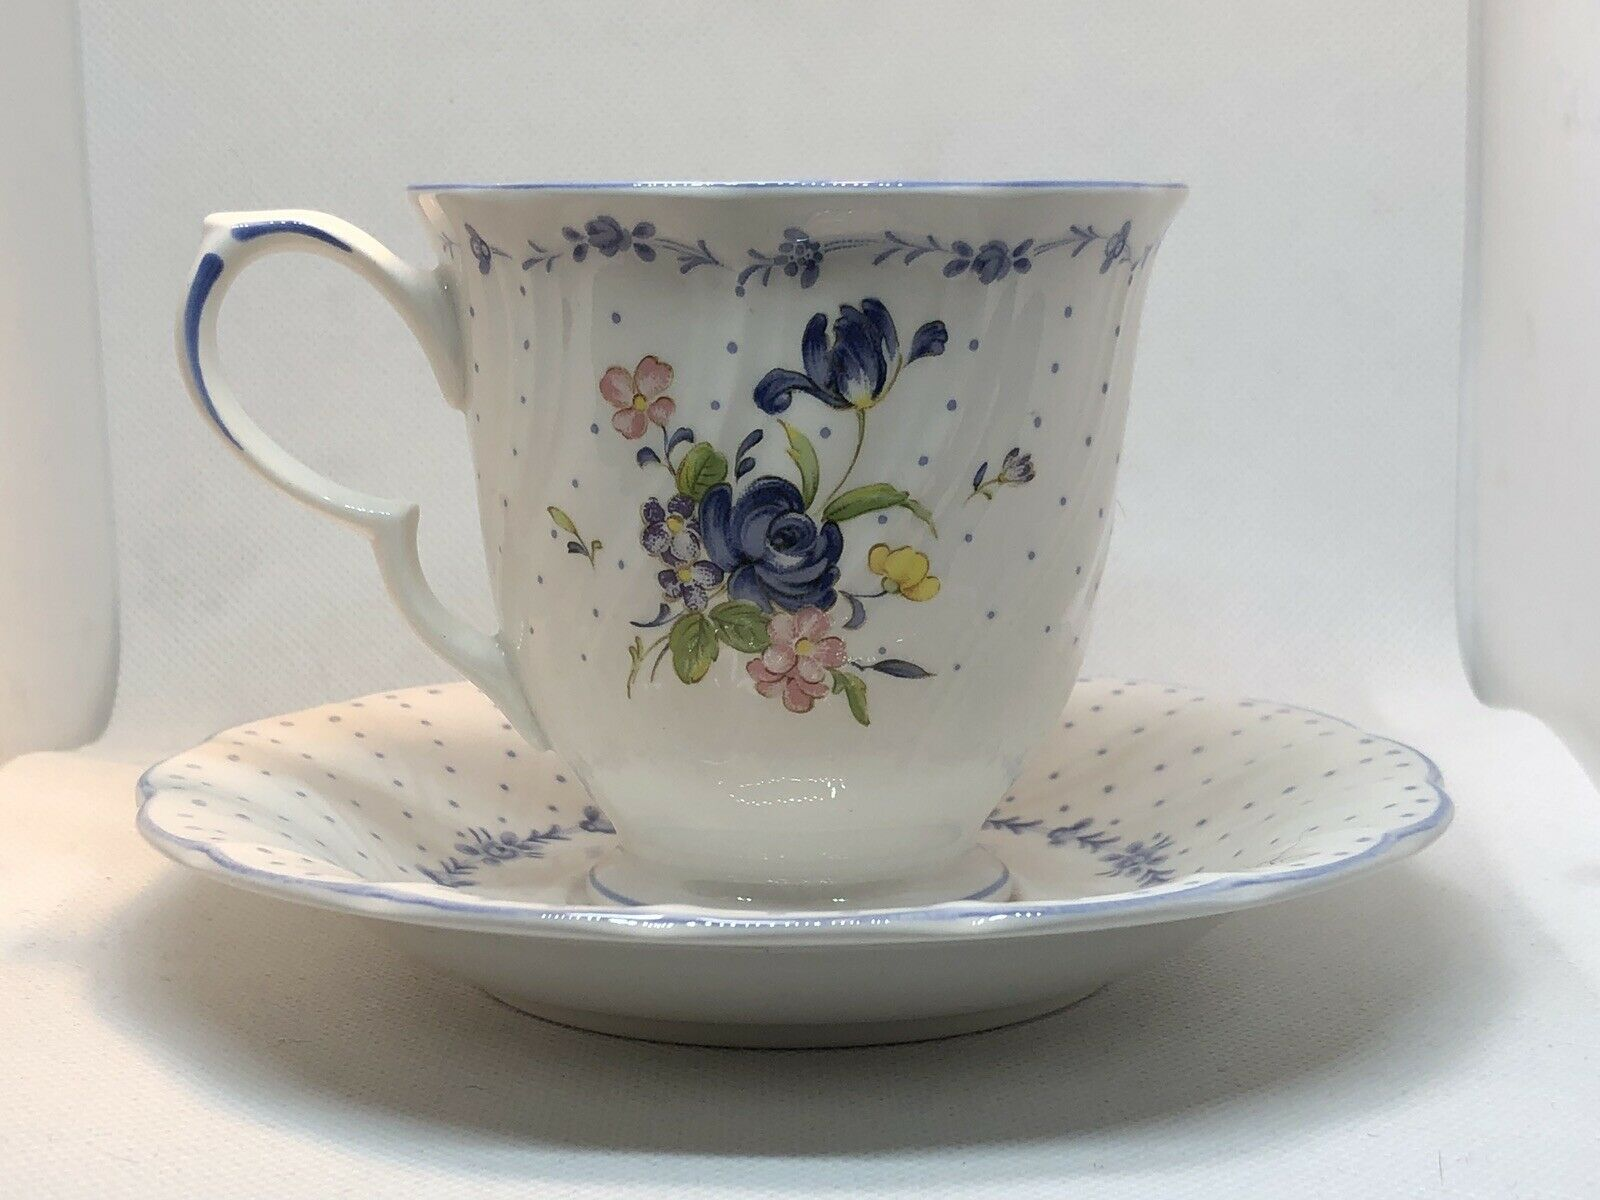 Nikko Blue Peony Cup and Saucer Fine China - $6.00